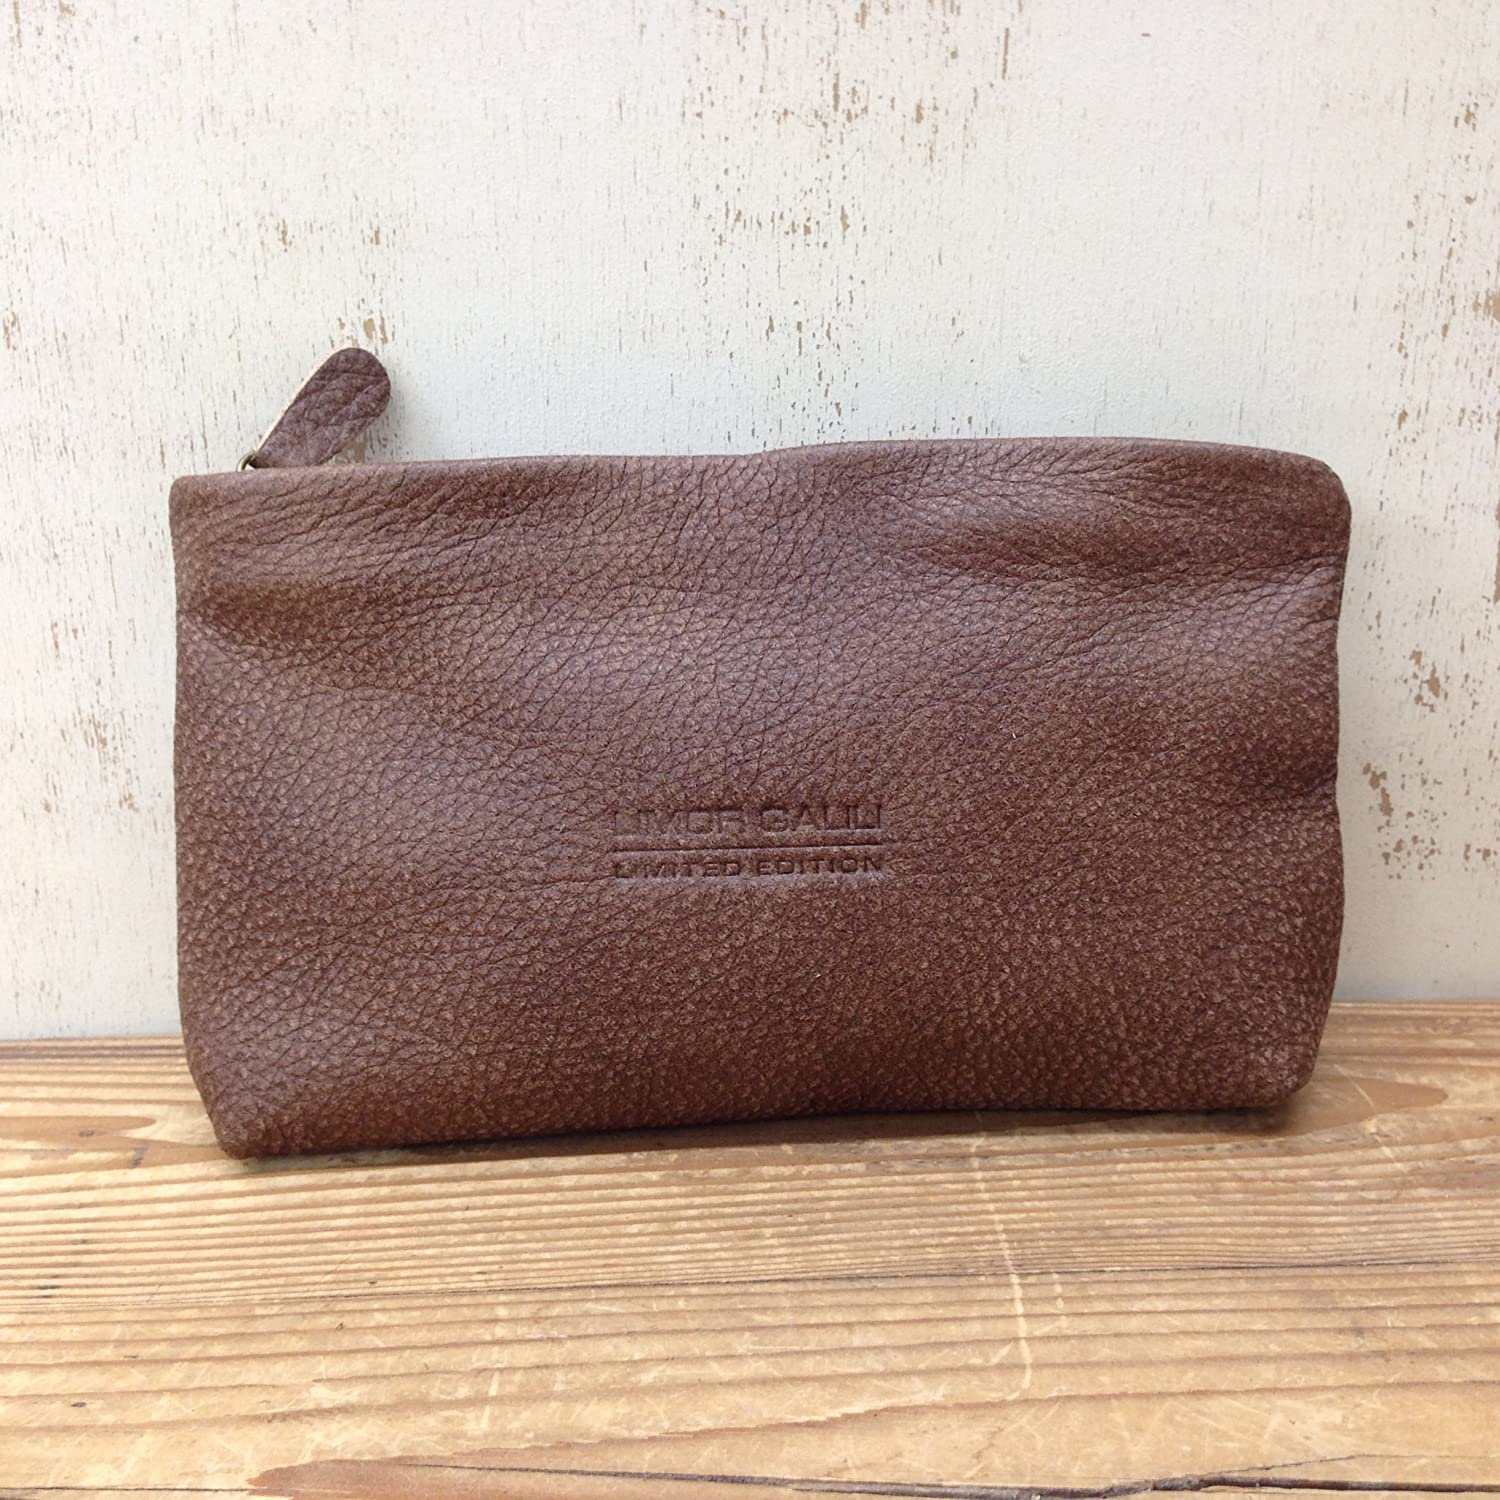 42b6aa76498a Amazon.com  Distressed Brown Leather Pouch Makeup case Medium leather  cosmetic bag women zippered wallet purse  Handmade